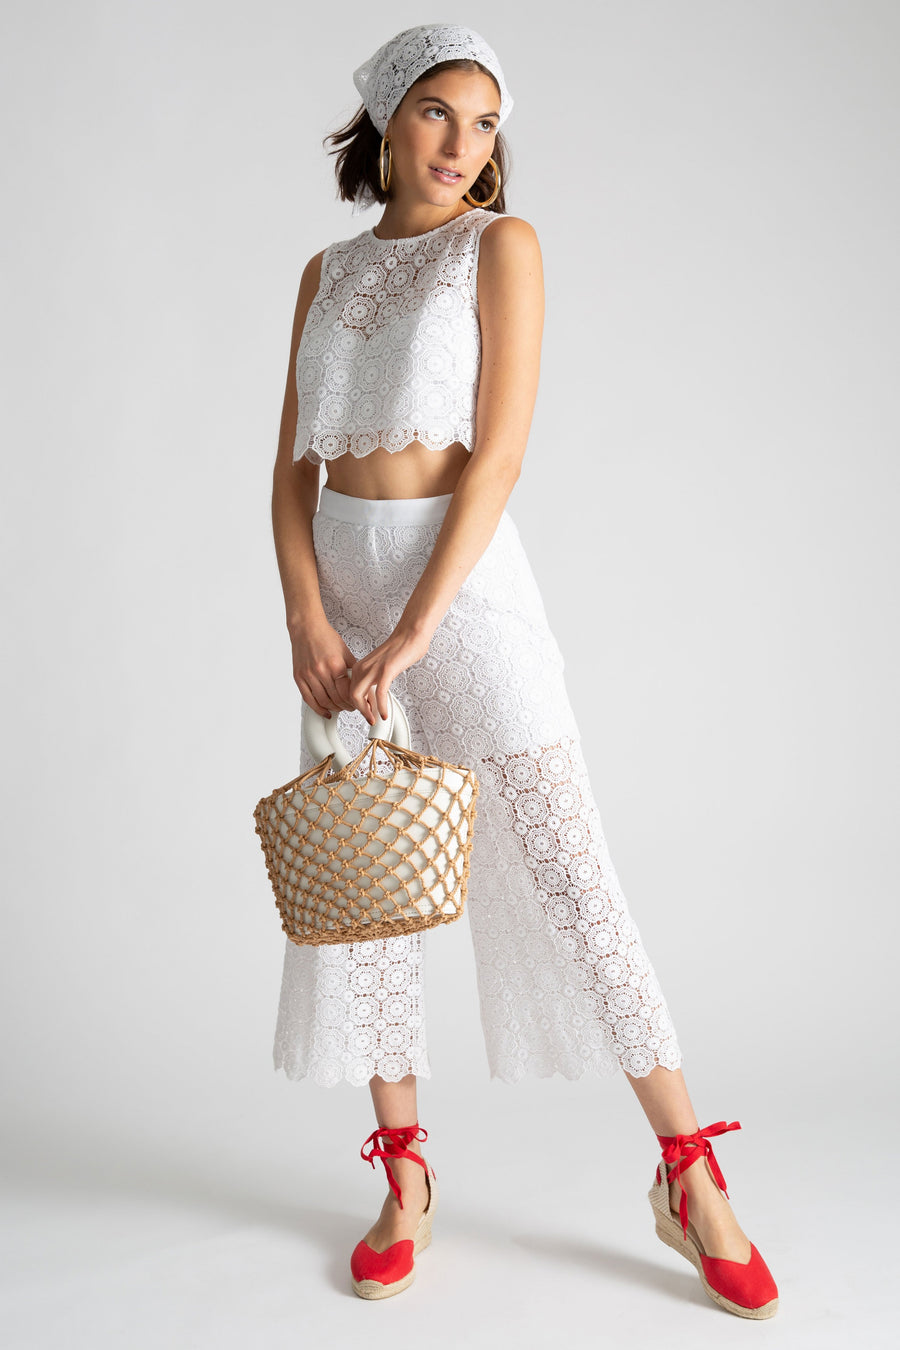 This is a photo of a woman wearing an all white lace outfit with a separate top and cropped pants. She is holding a white bag with natural colored netting around it. She styles the look with a matching lace headscarf, gold hoops, and red espadrilles.